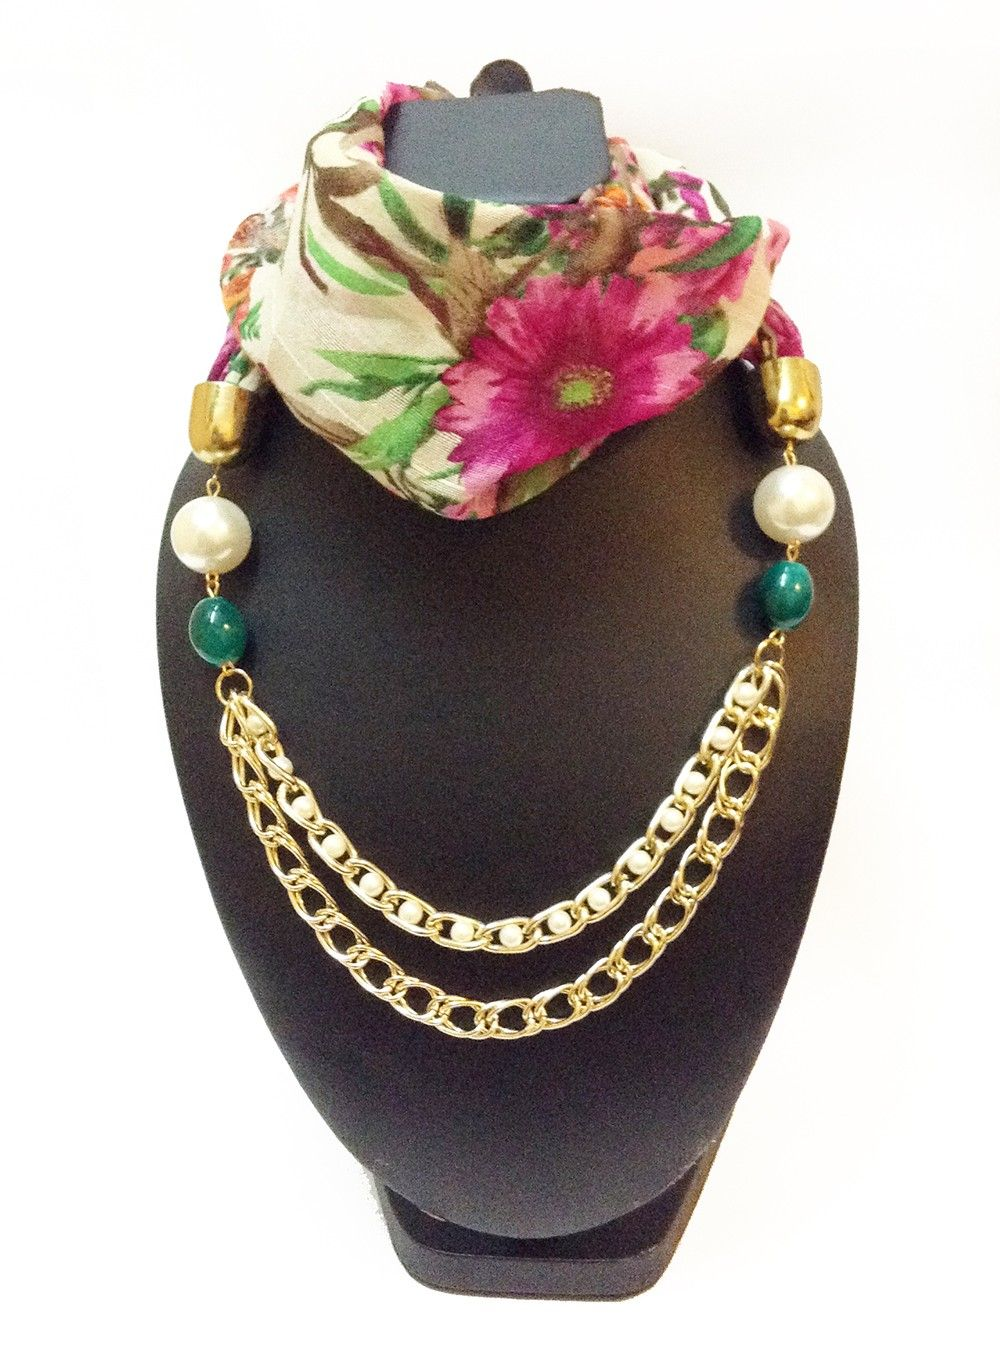 Raw Silk Cream Floral Printed Necklace Scarf - Lime